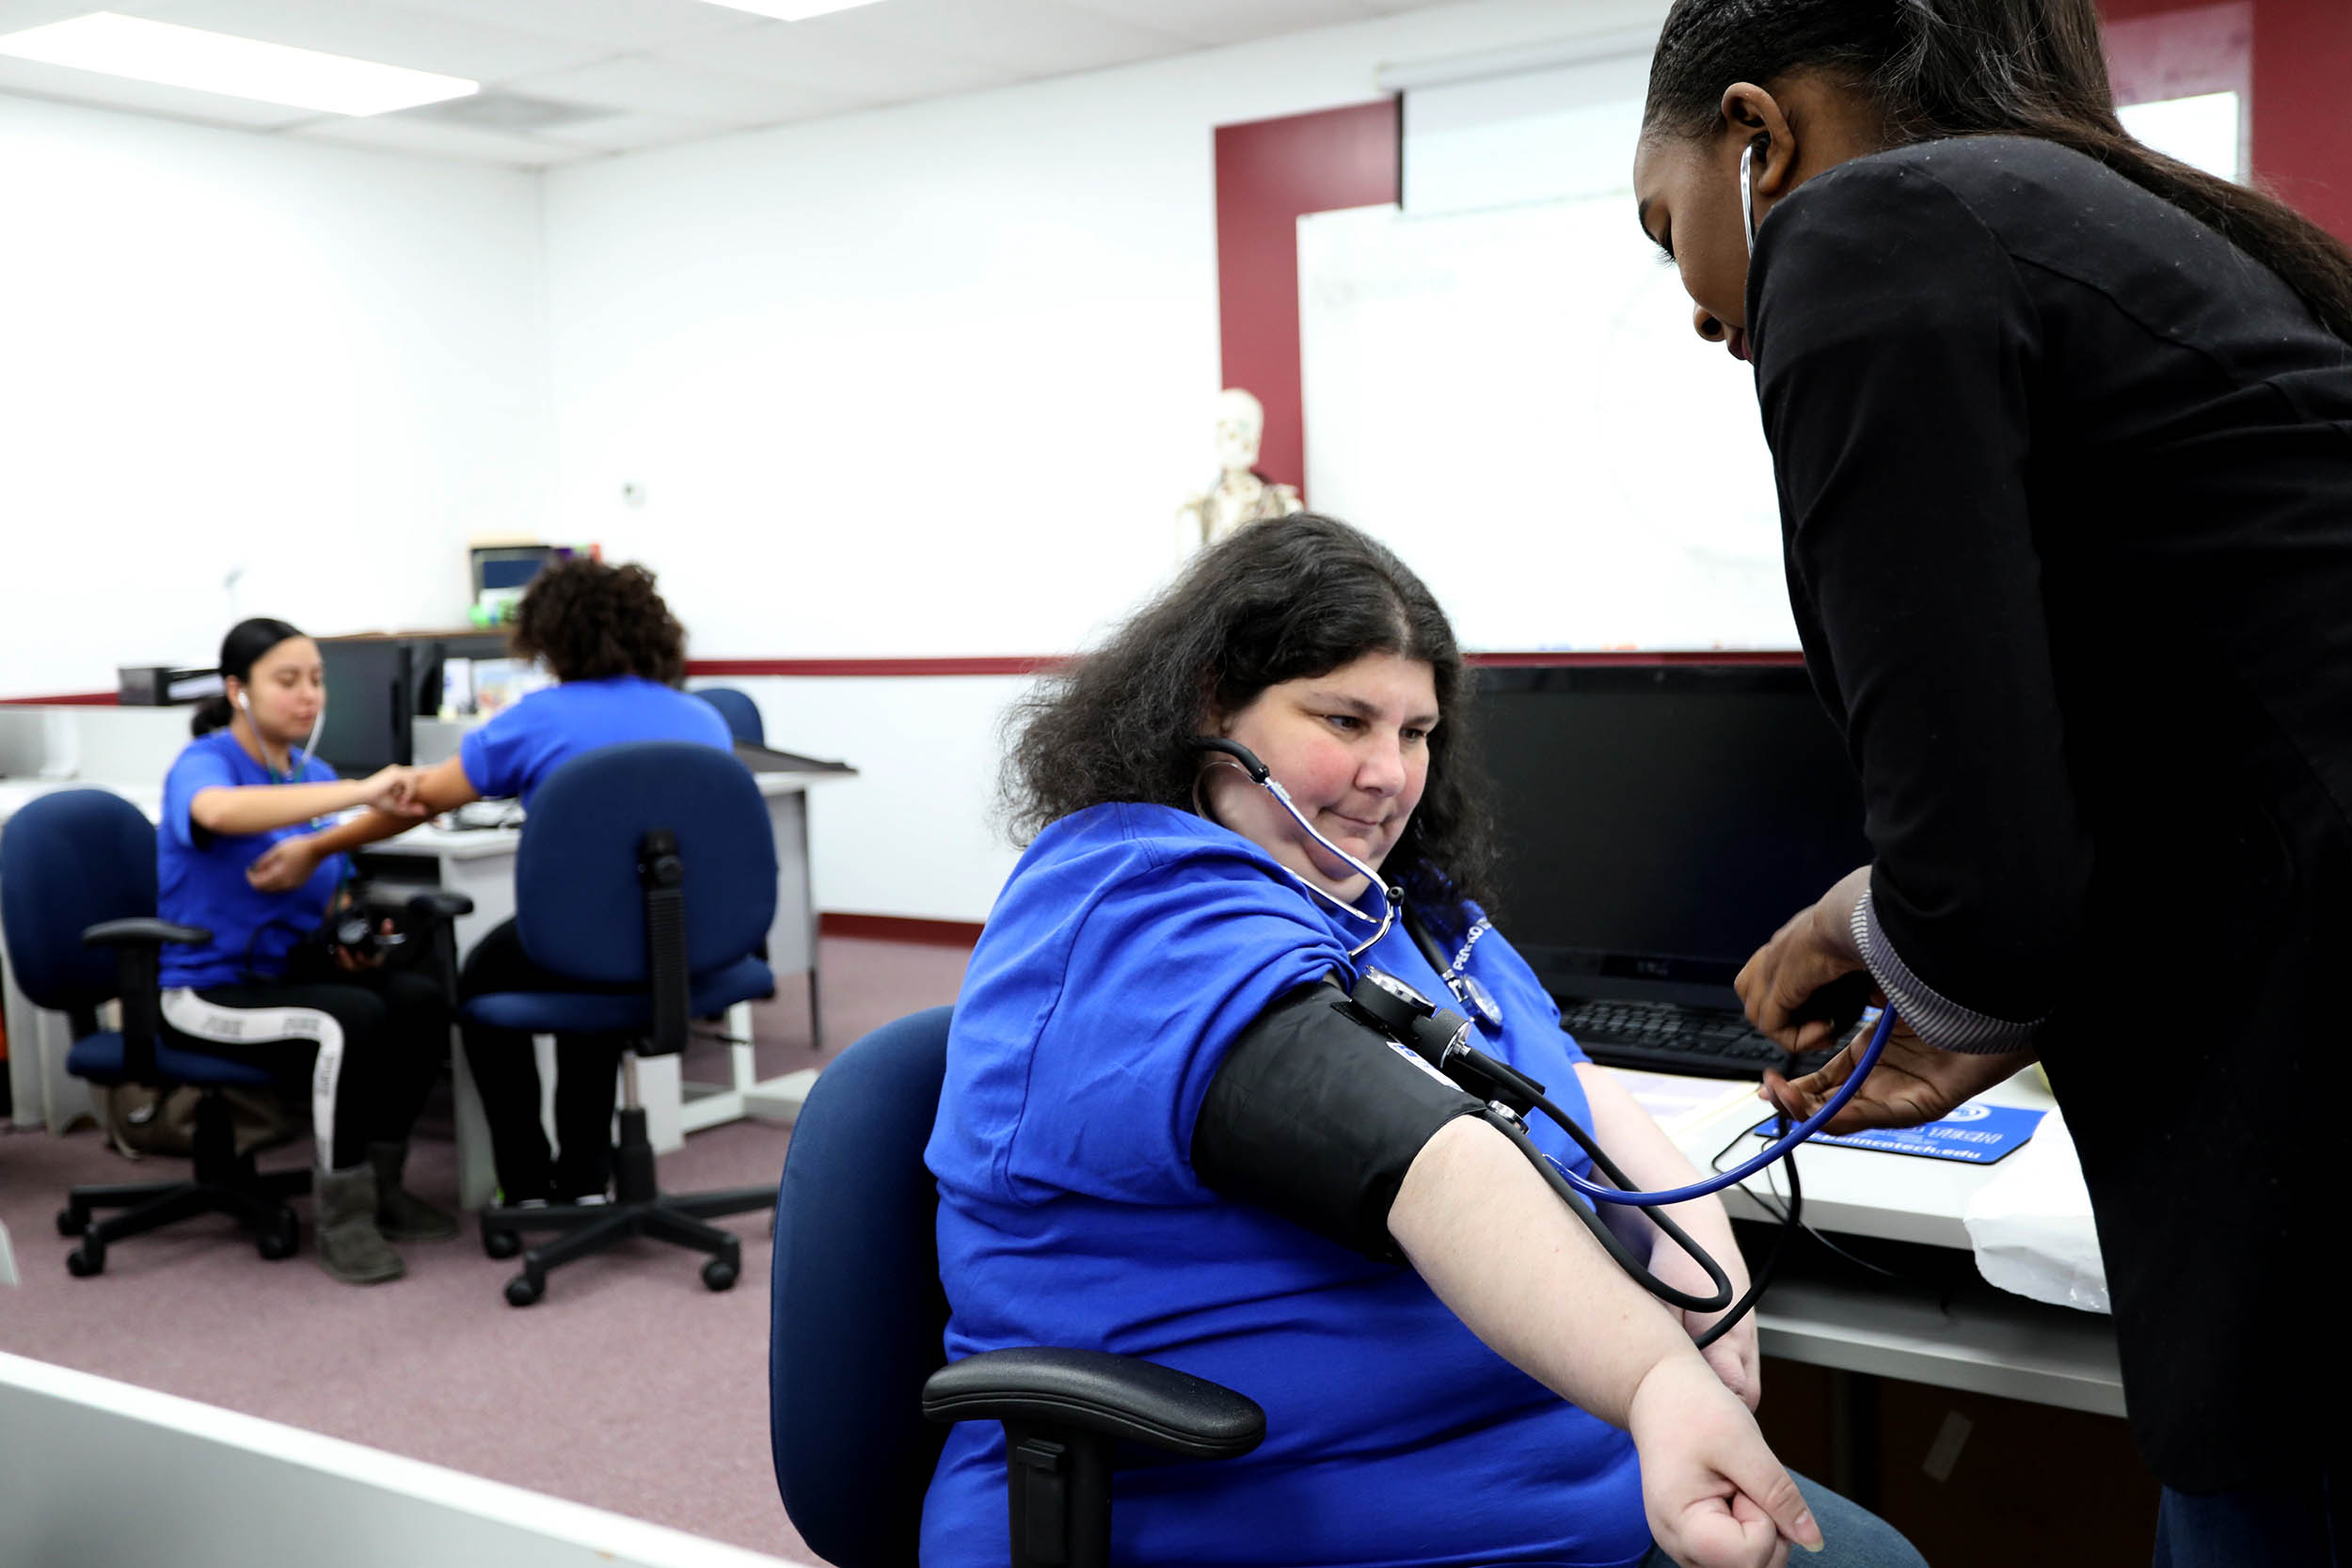 Woman's Heart Rate Being Checked by Medical Assistant Student